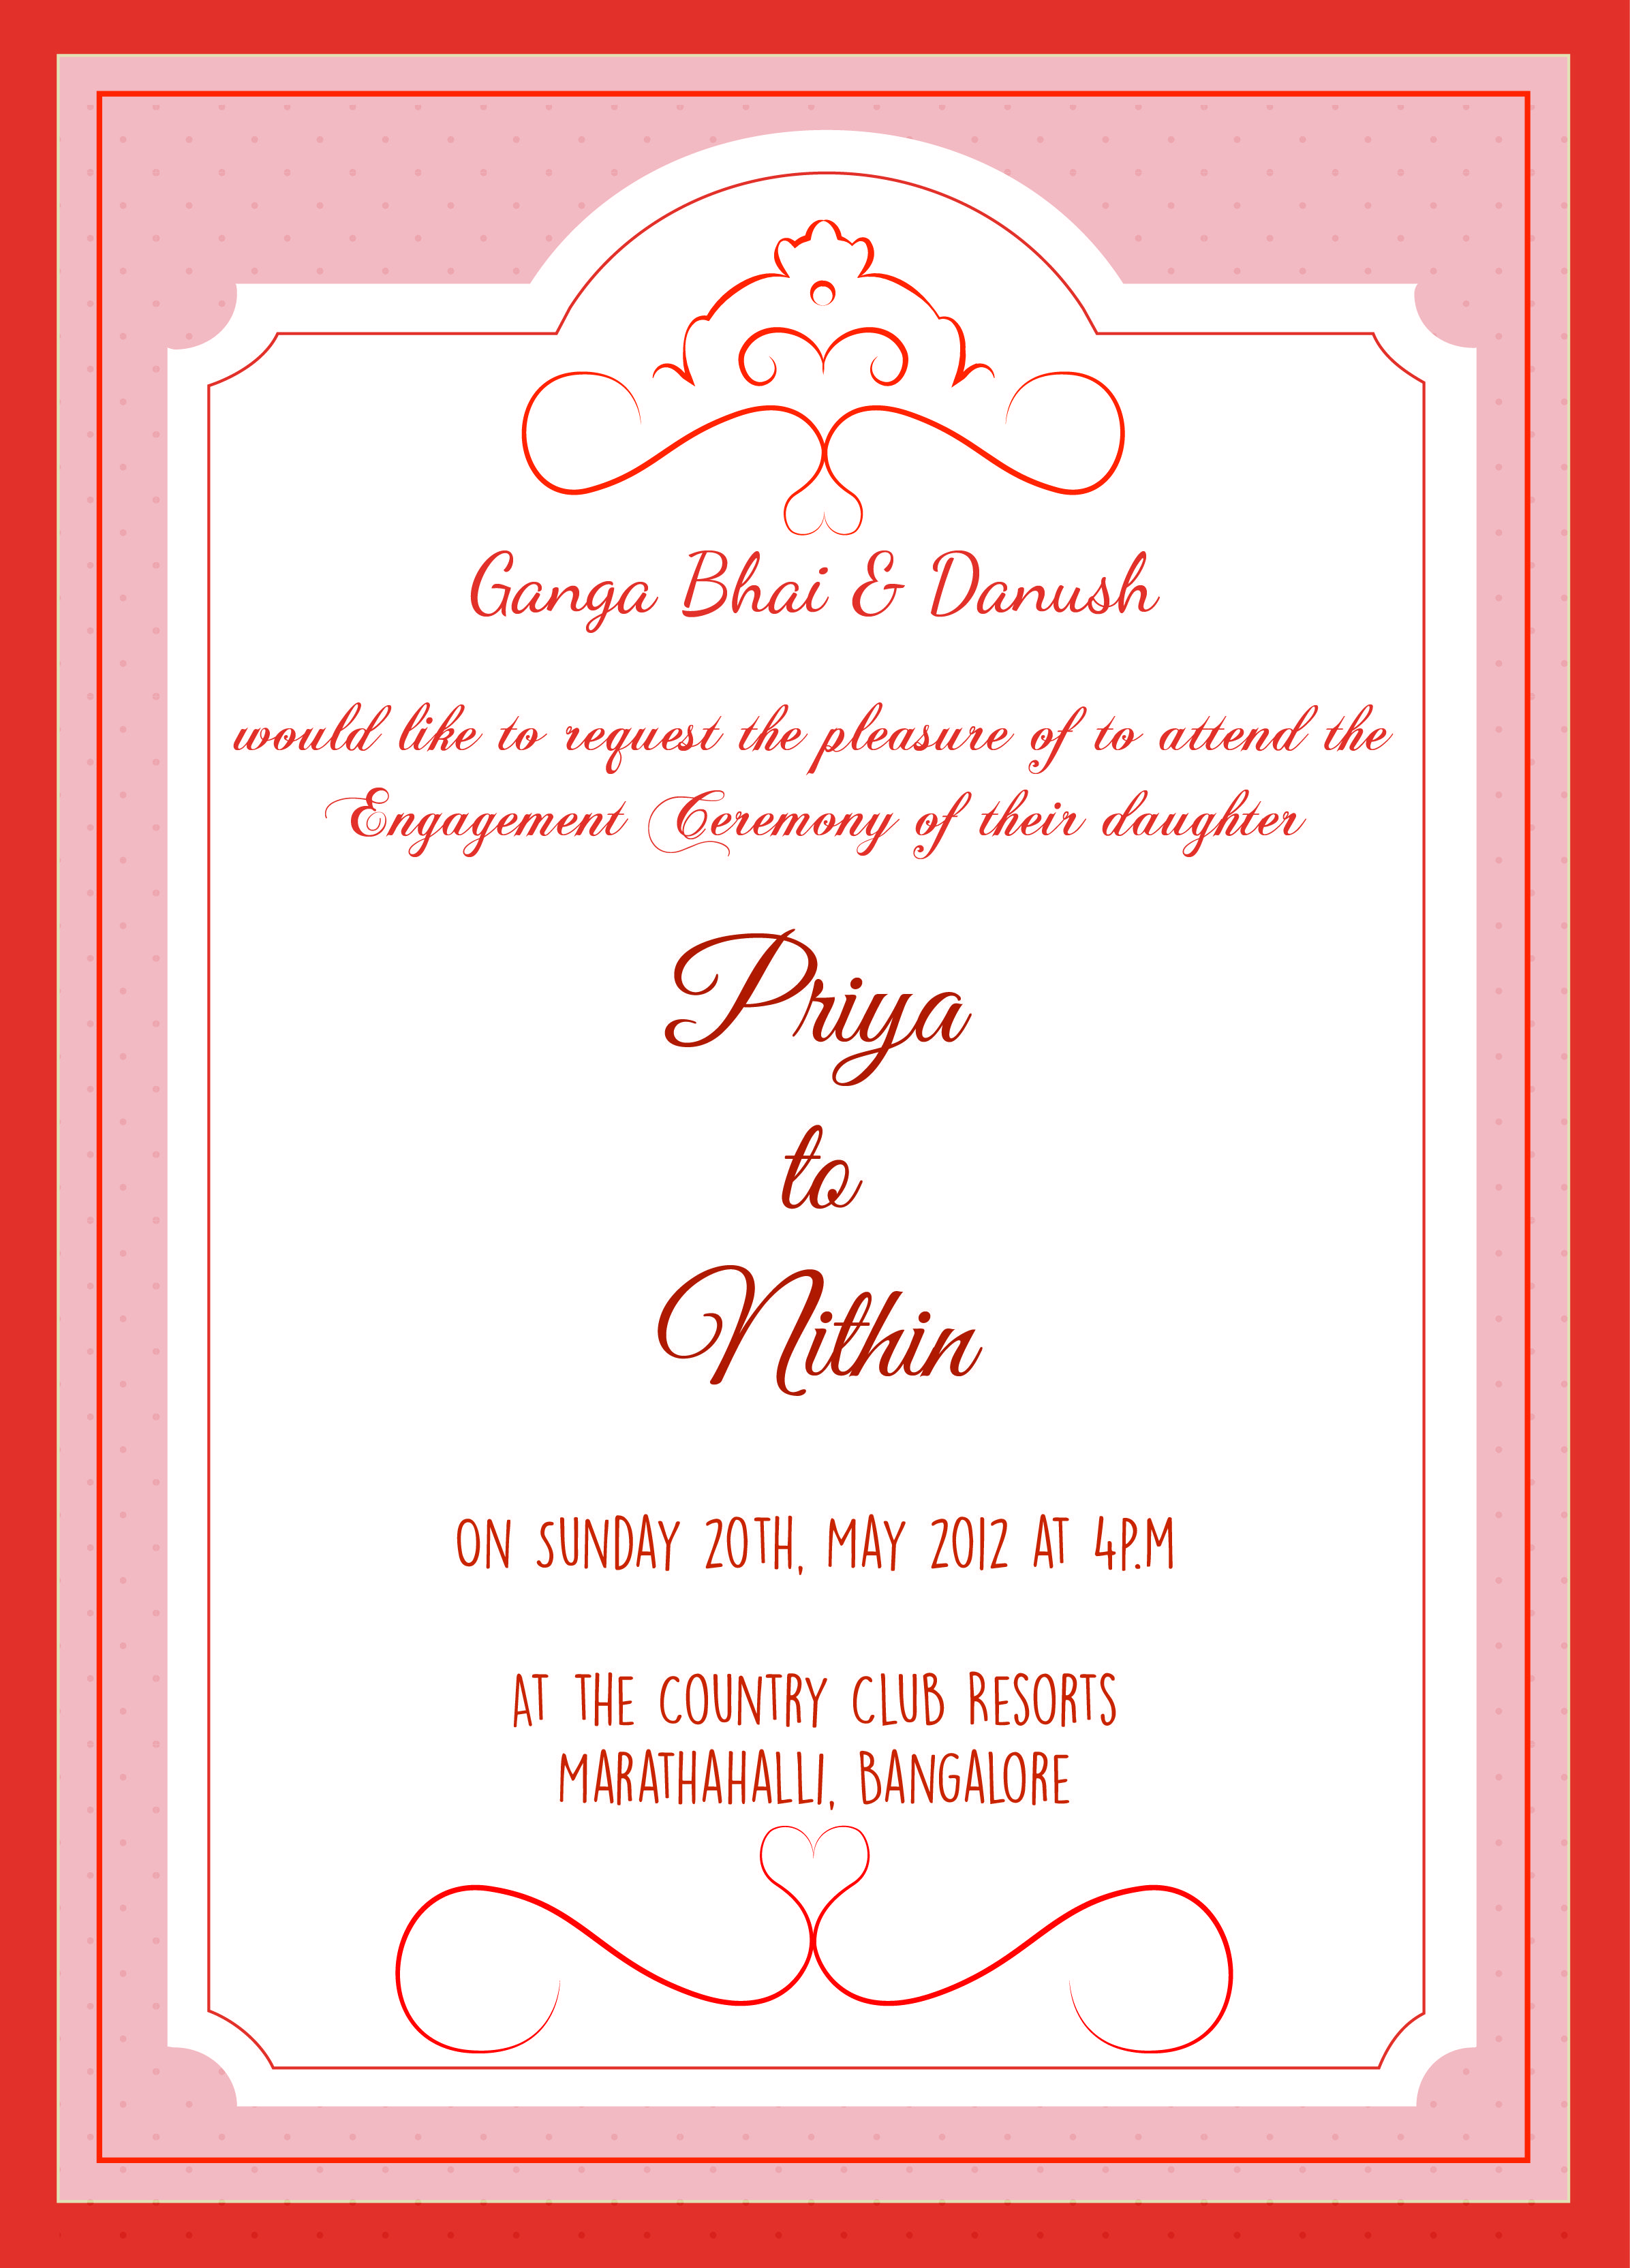 Format Of Engagement Invitation Engagement Ceremony Invitation Card With Wordings Check It Out .